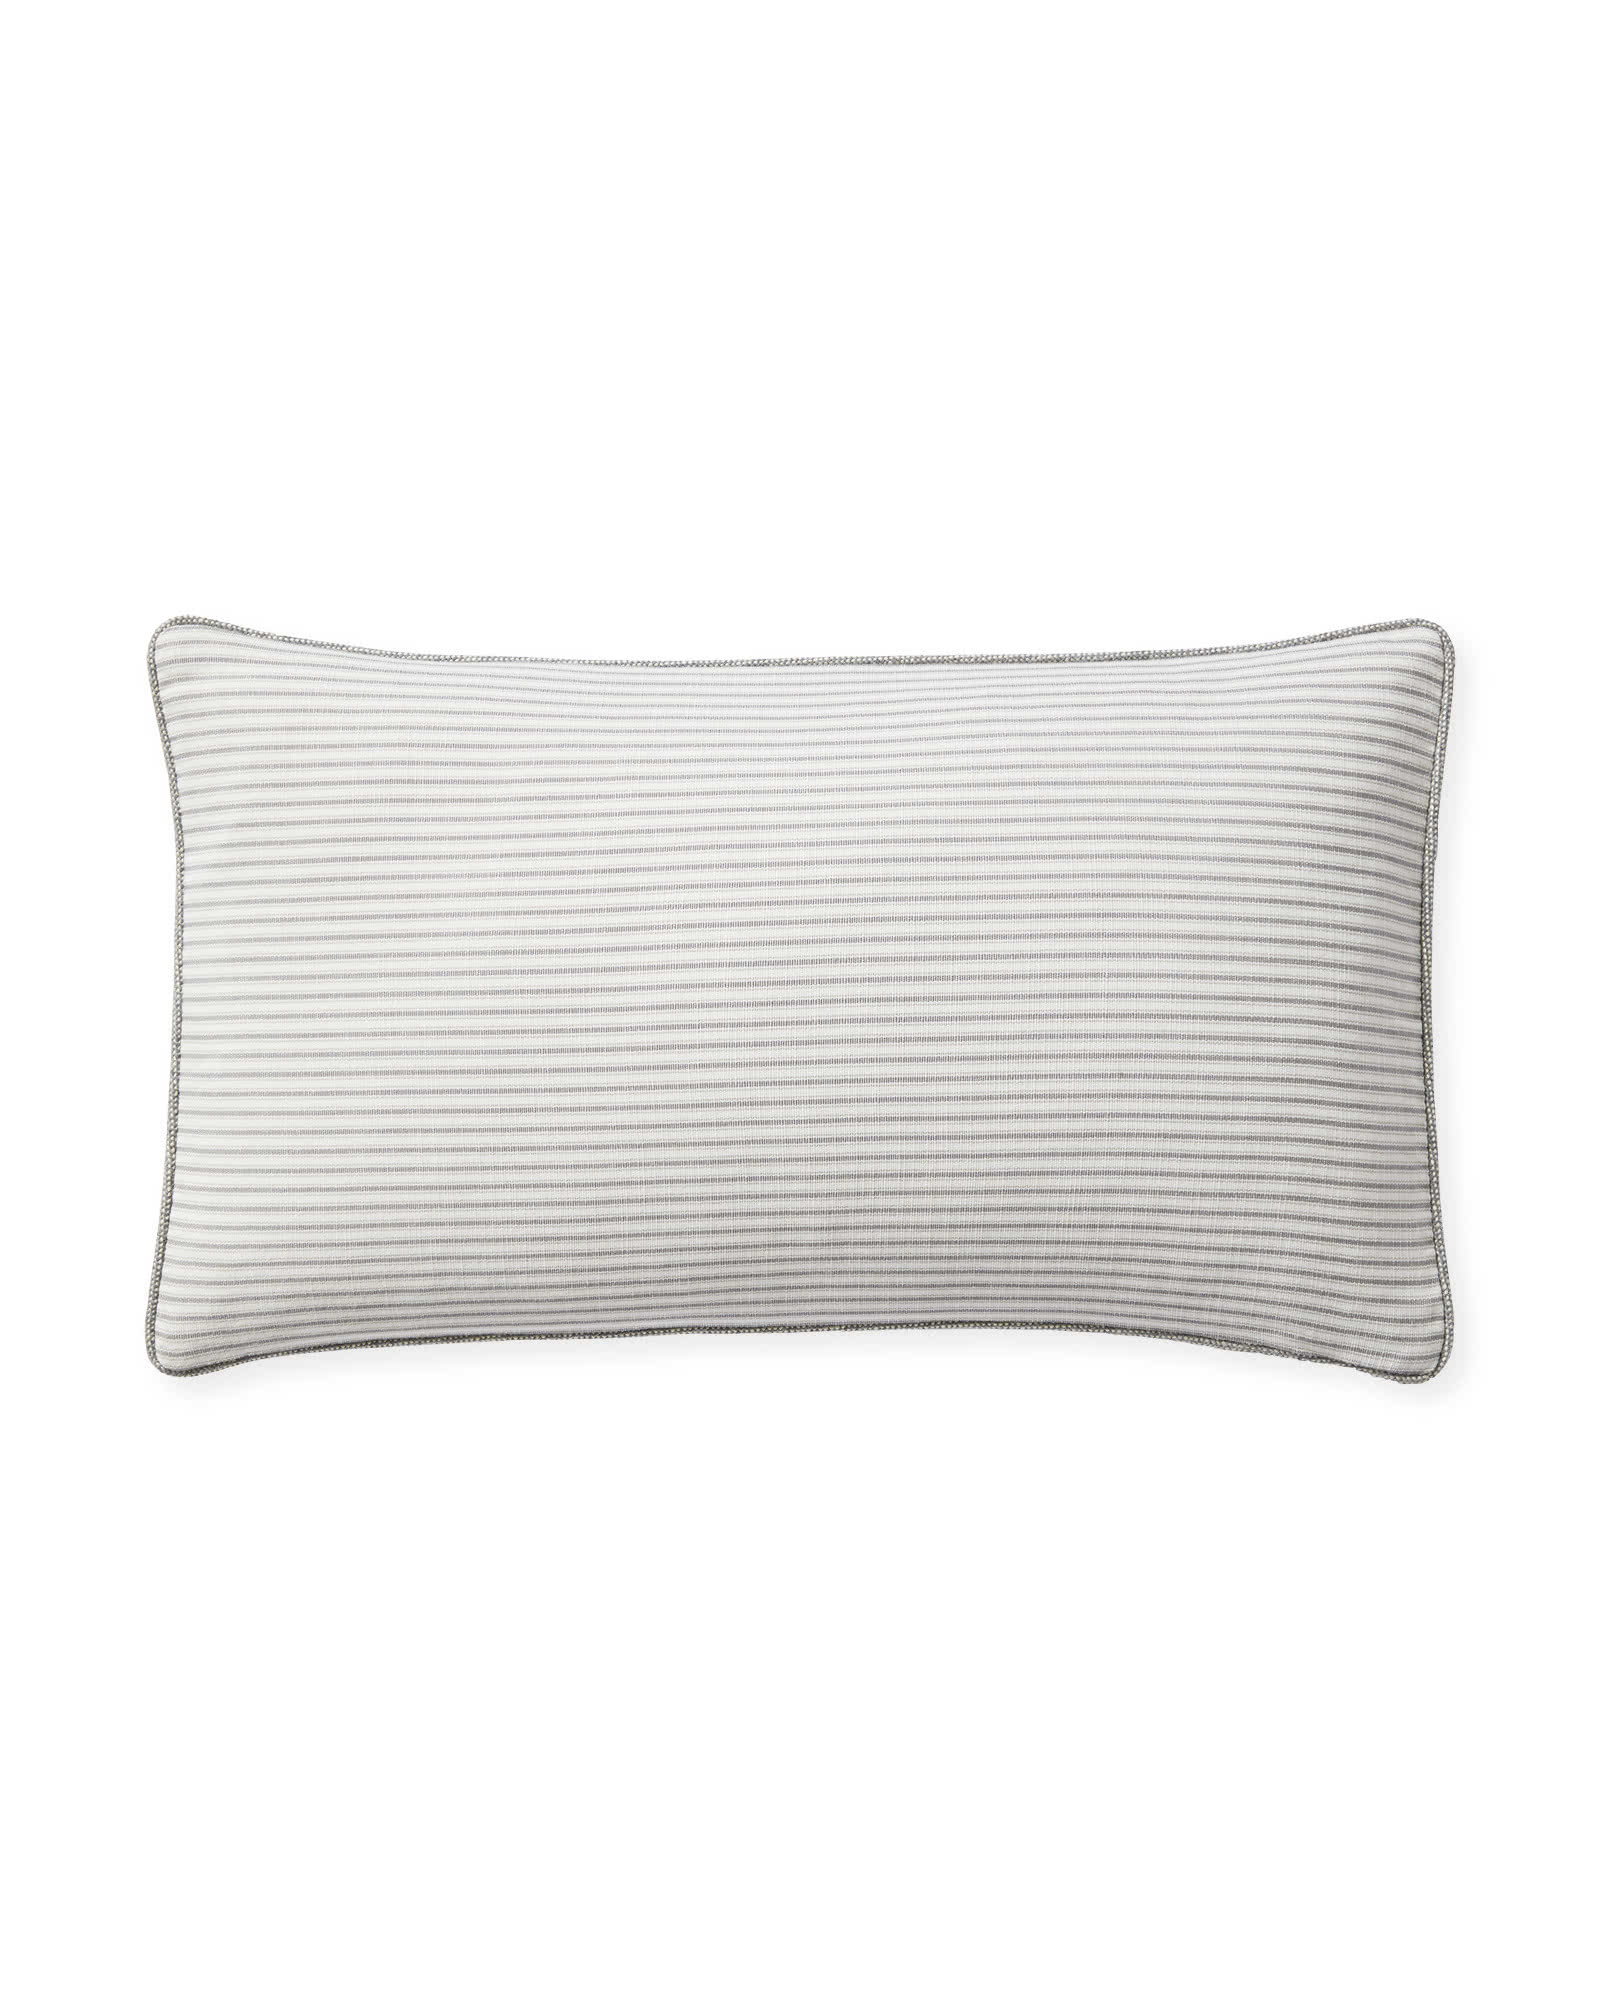 Perennials® Shirting Stripe Outdoor Pillow Cover, Pewter